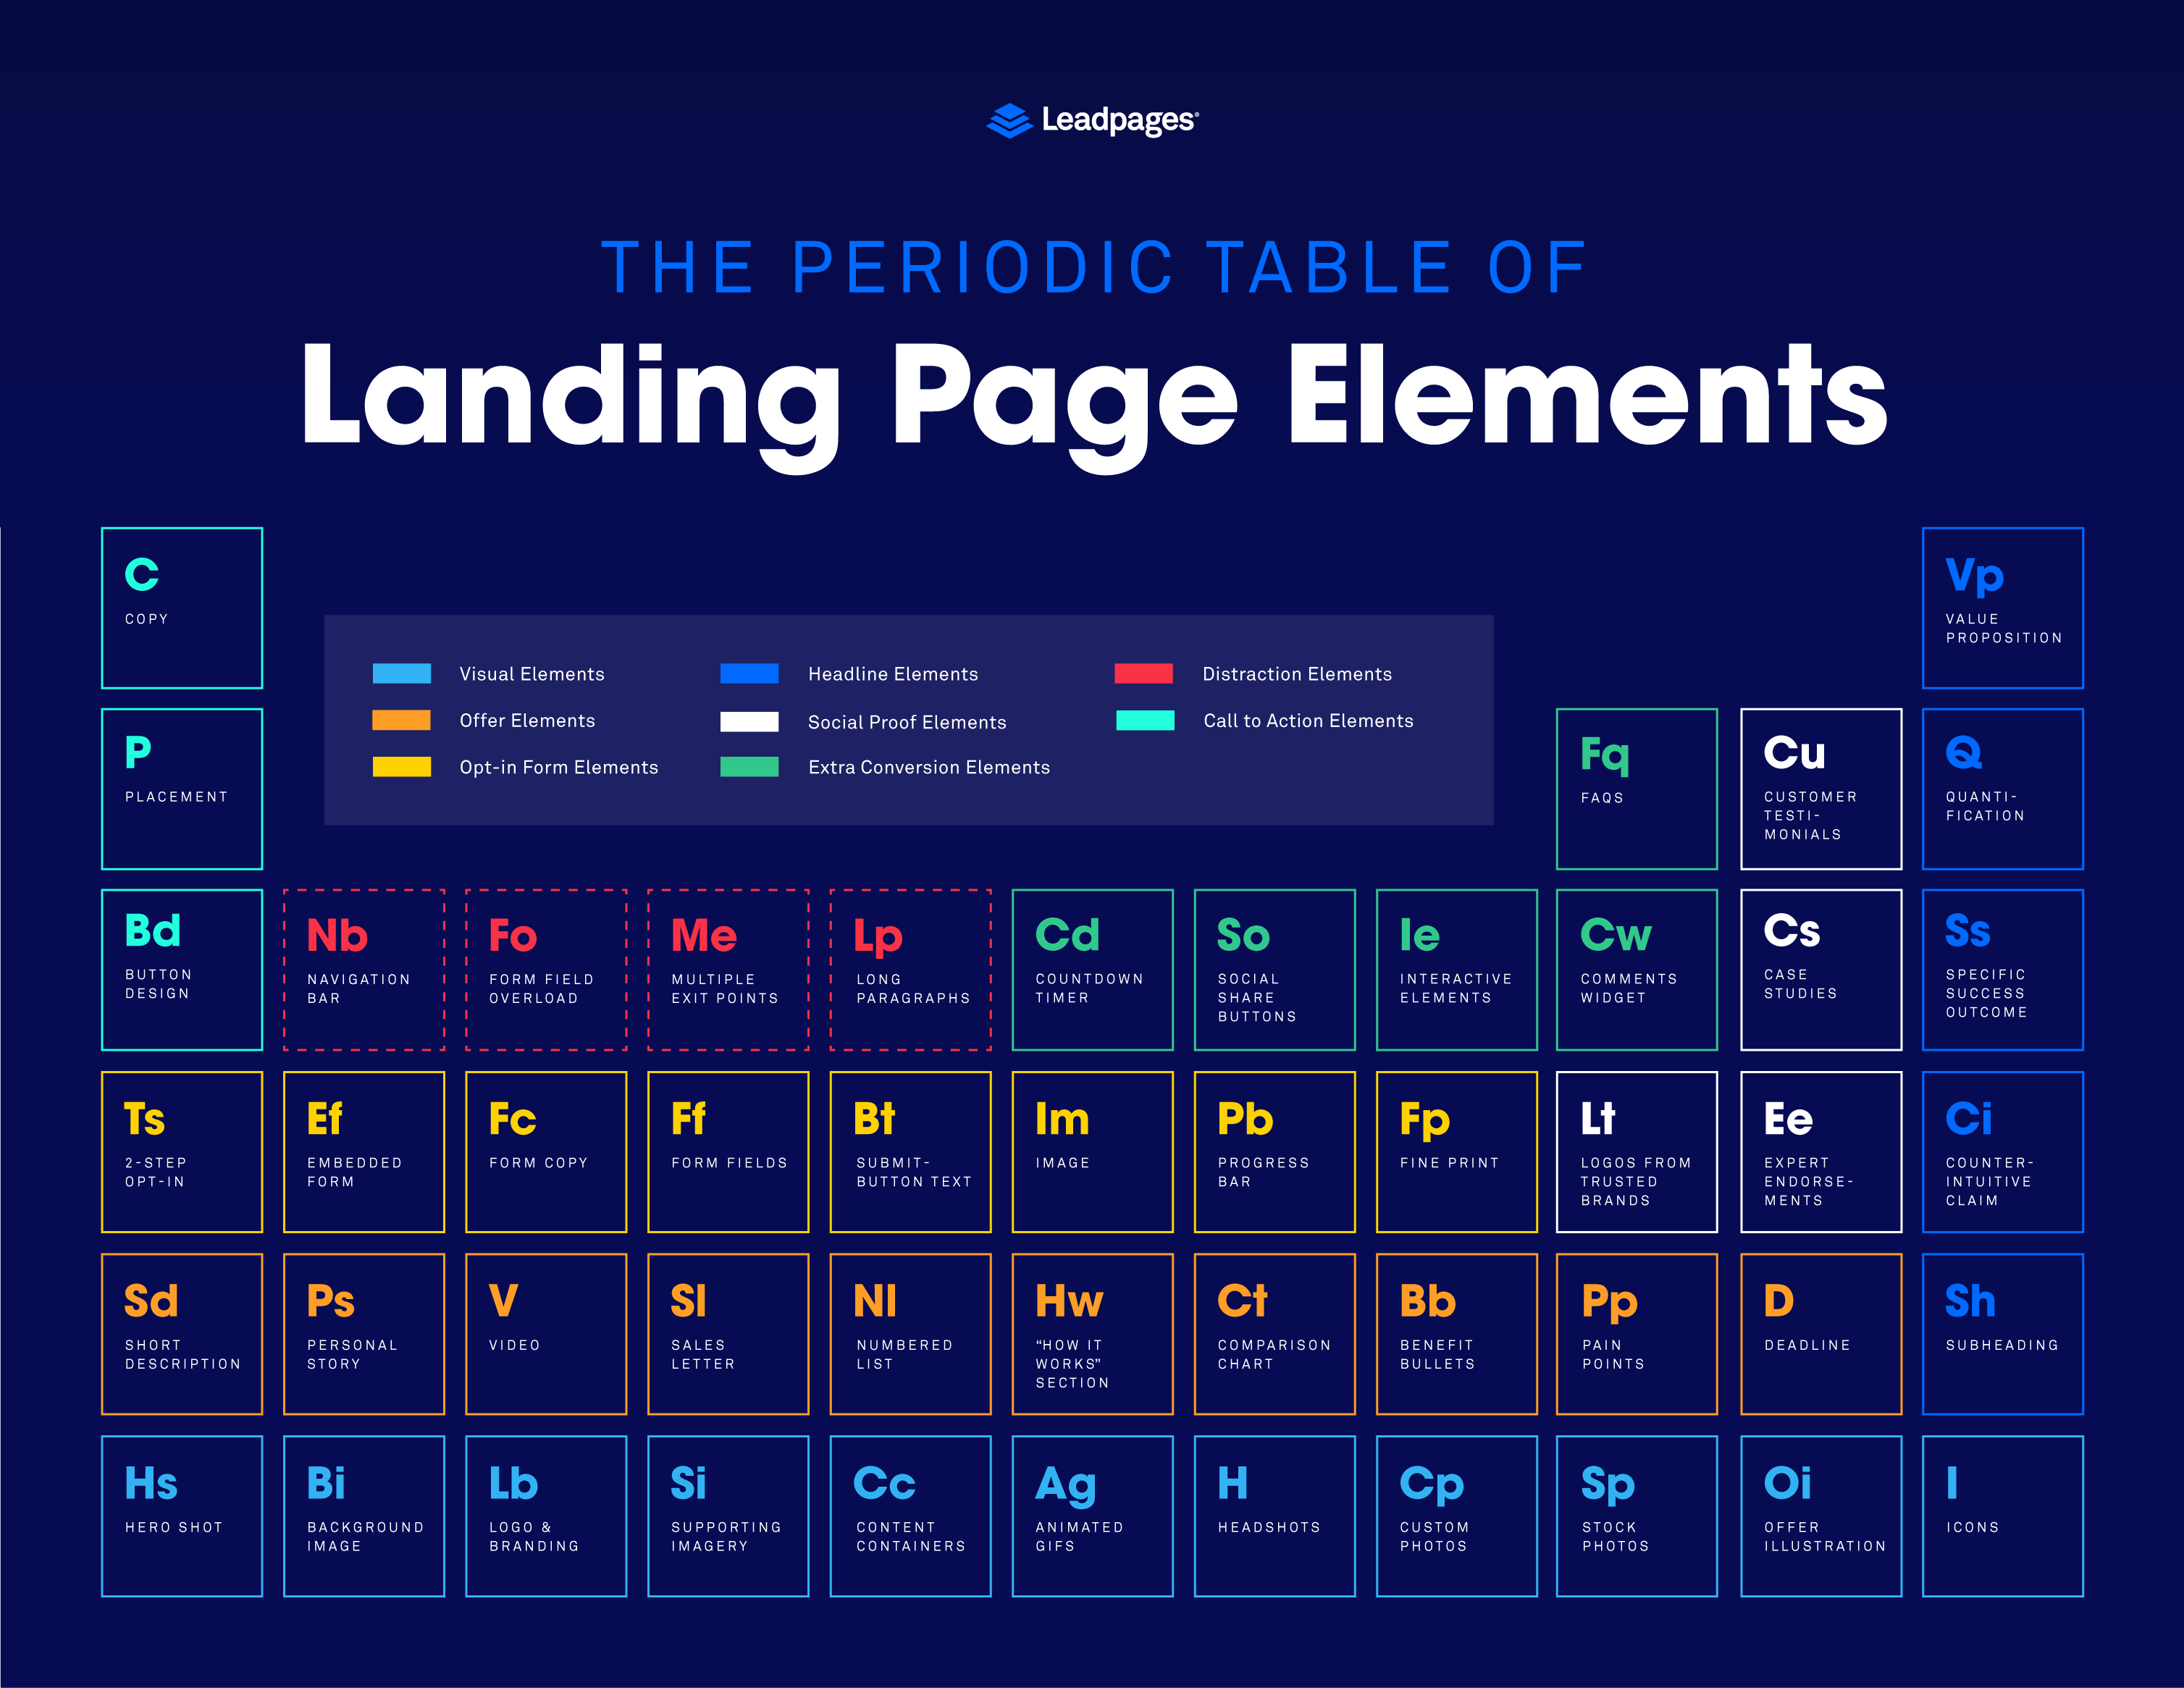 The Periodic Table Of Landing Page Elements From Leadpages